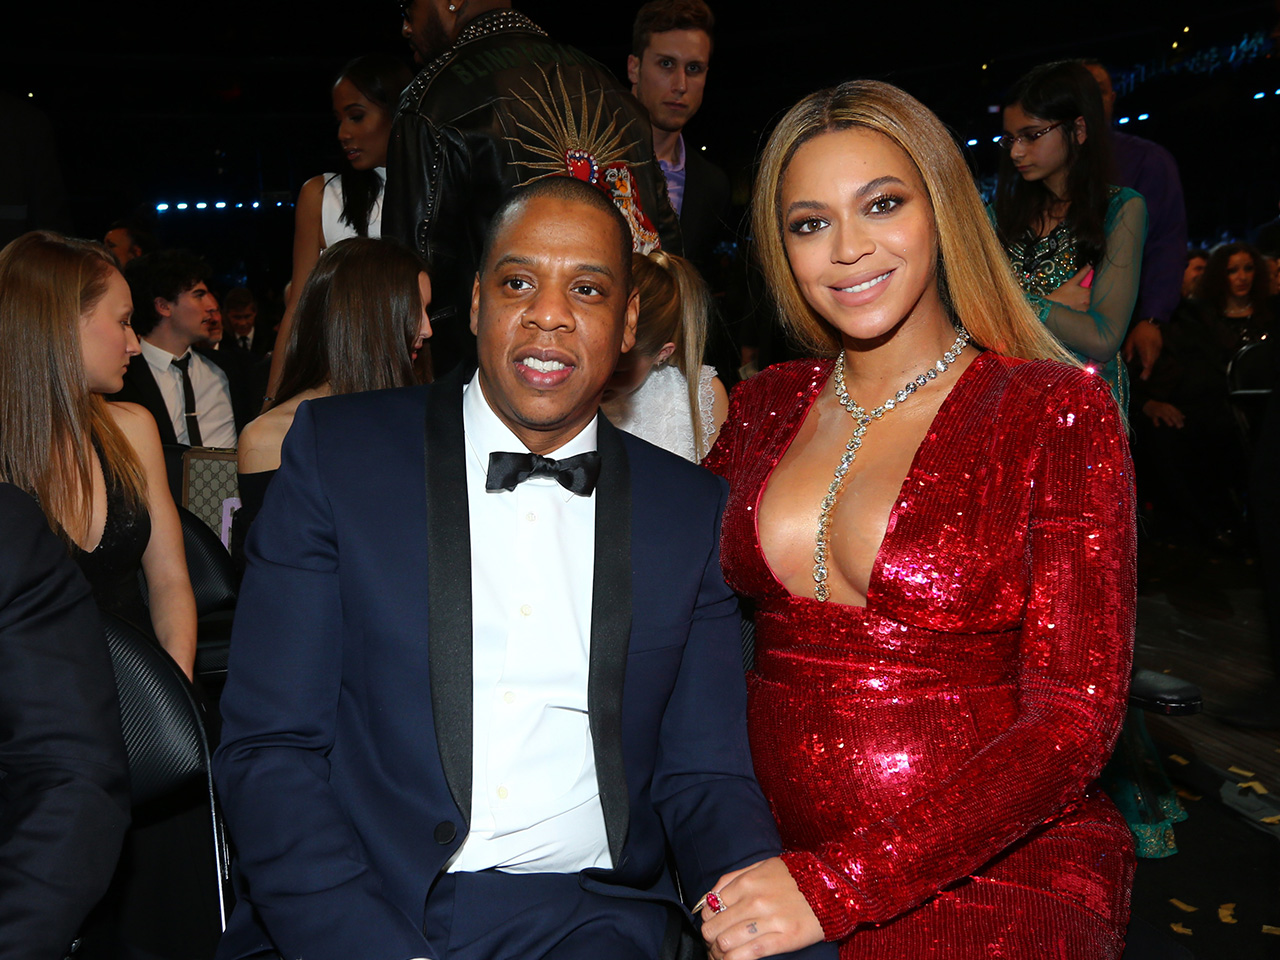 Beyonce and JayZ sitting at an awards show